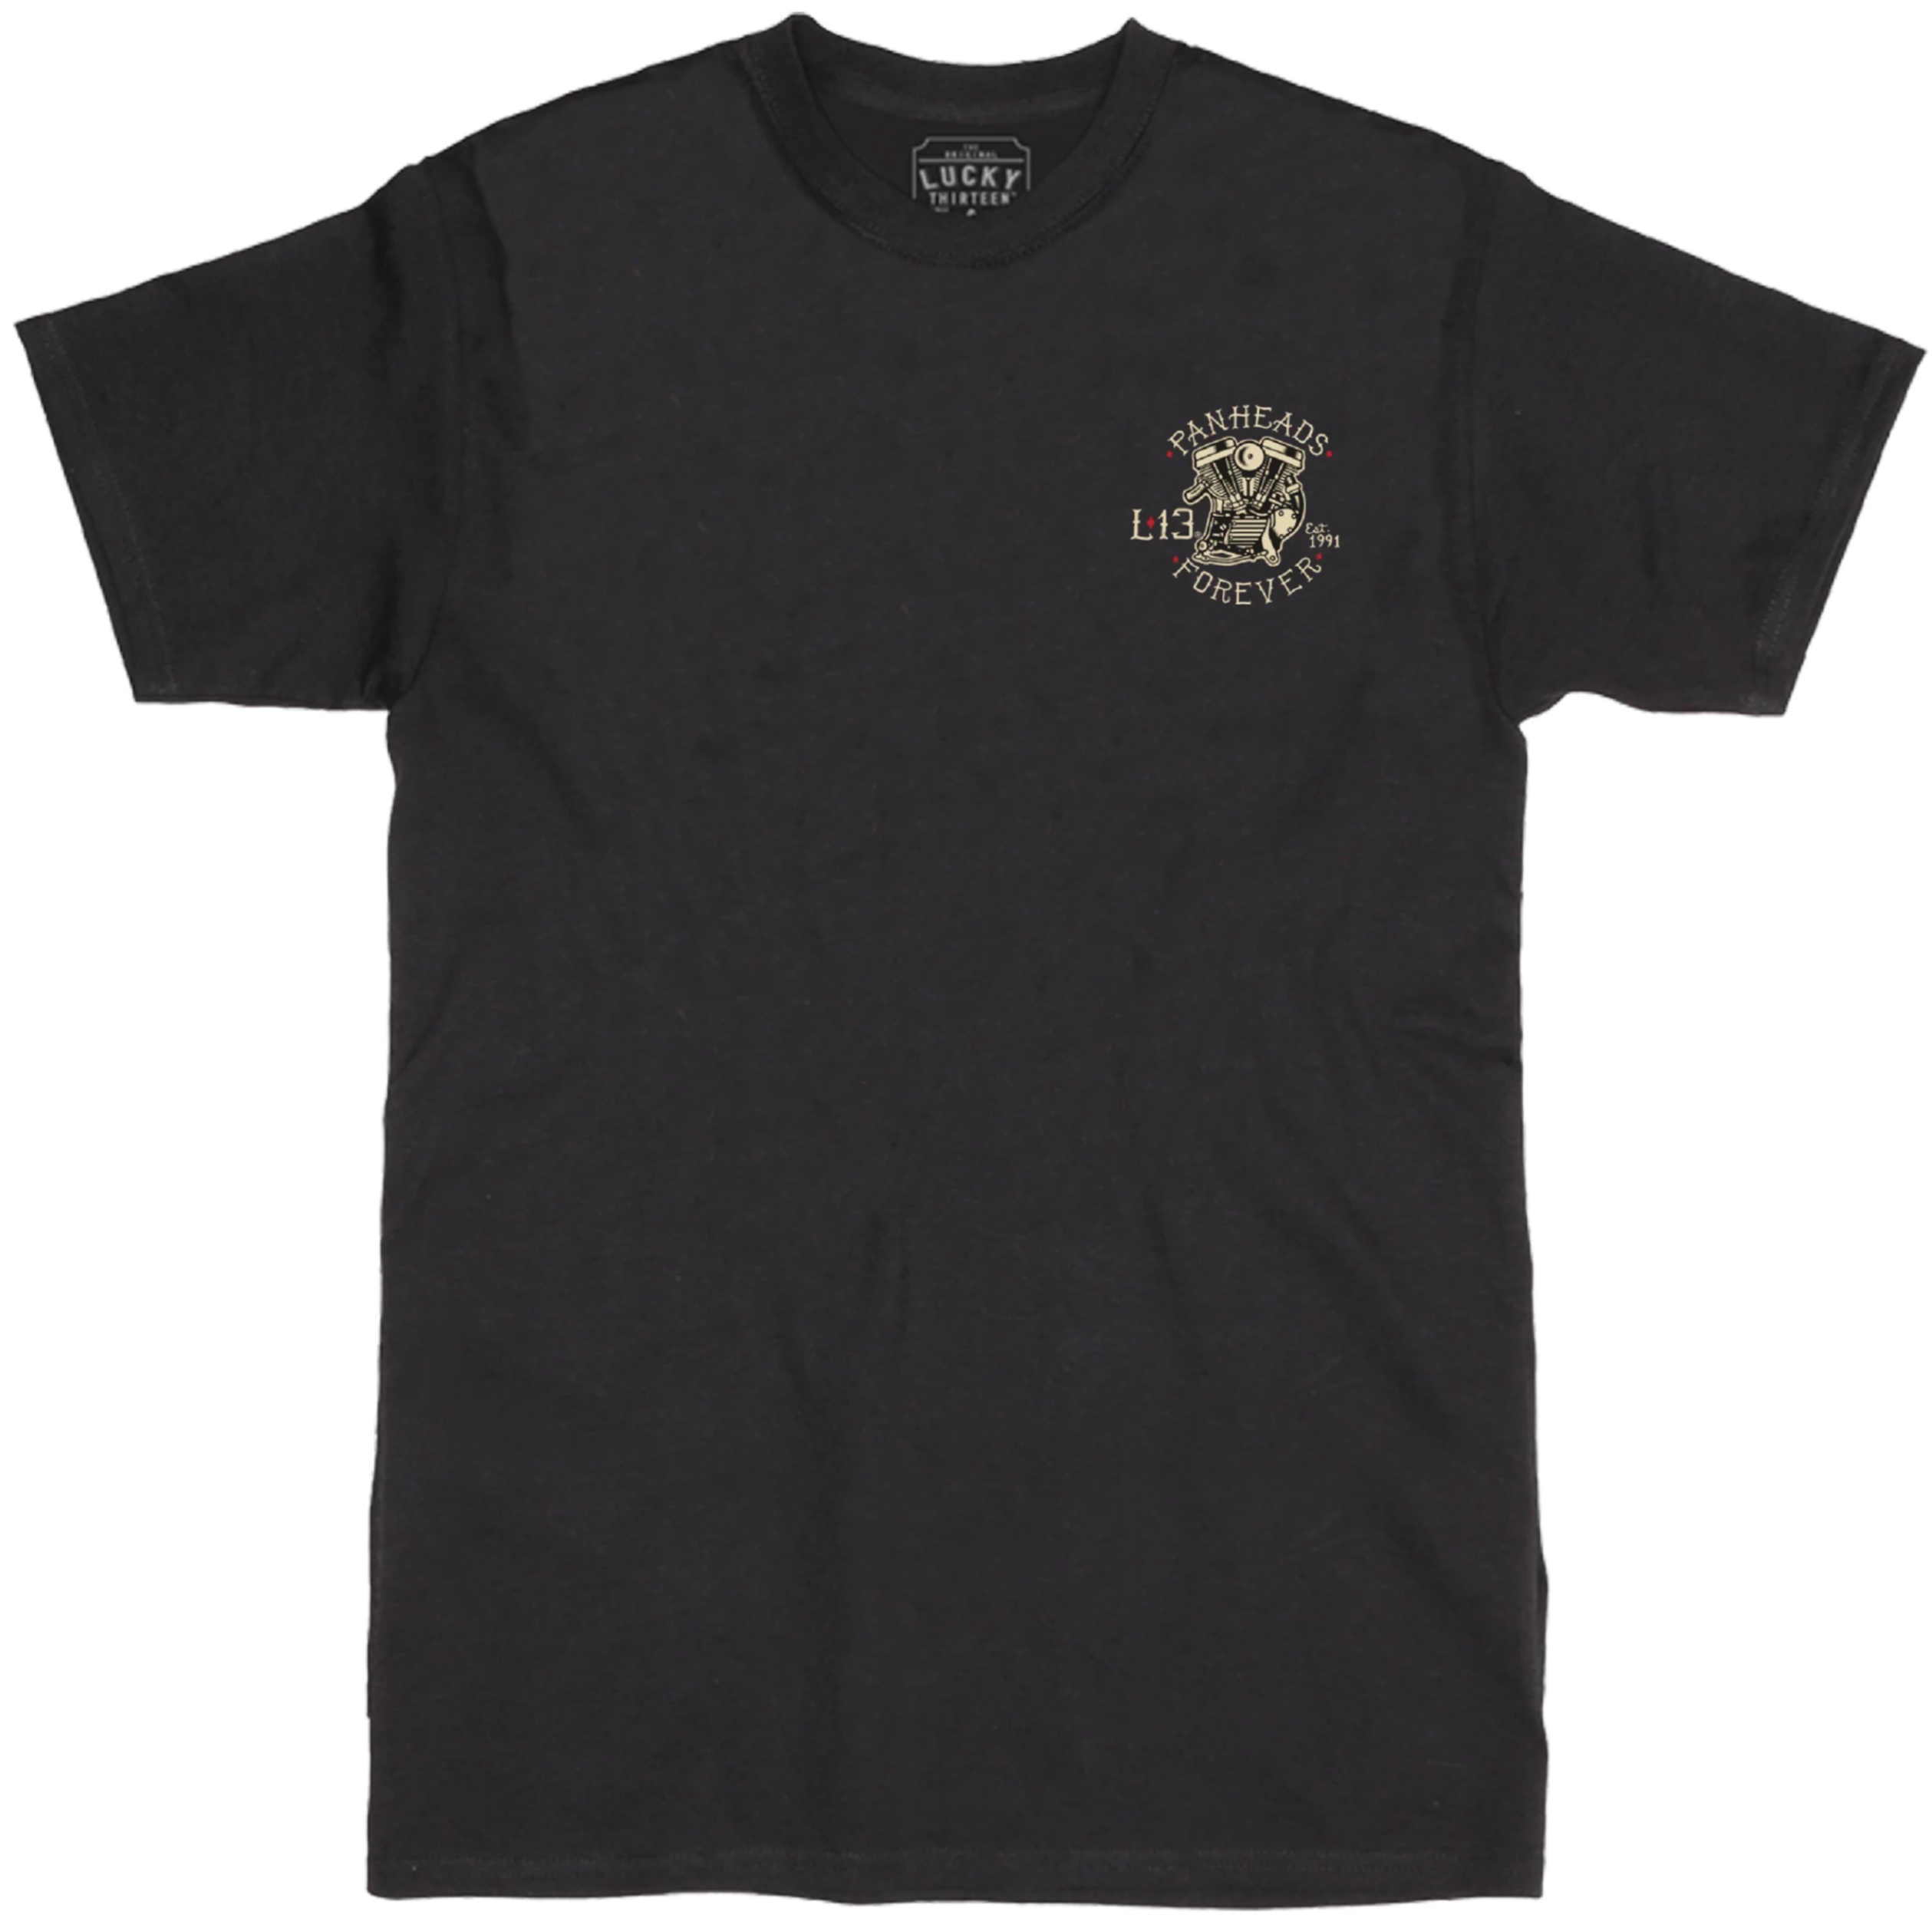 The TWIN COBRAS Tee